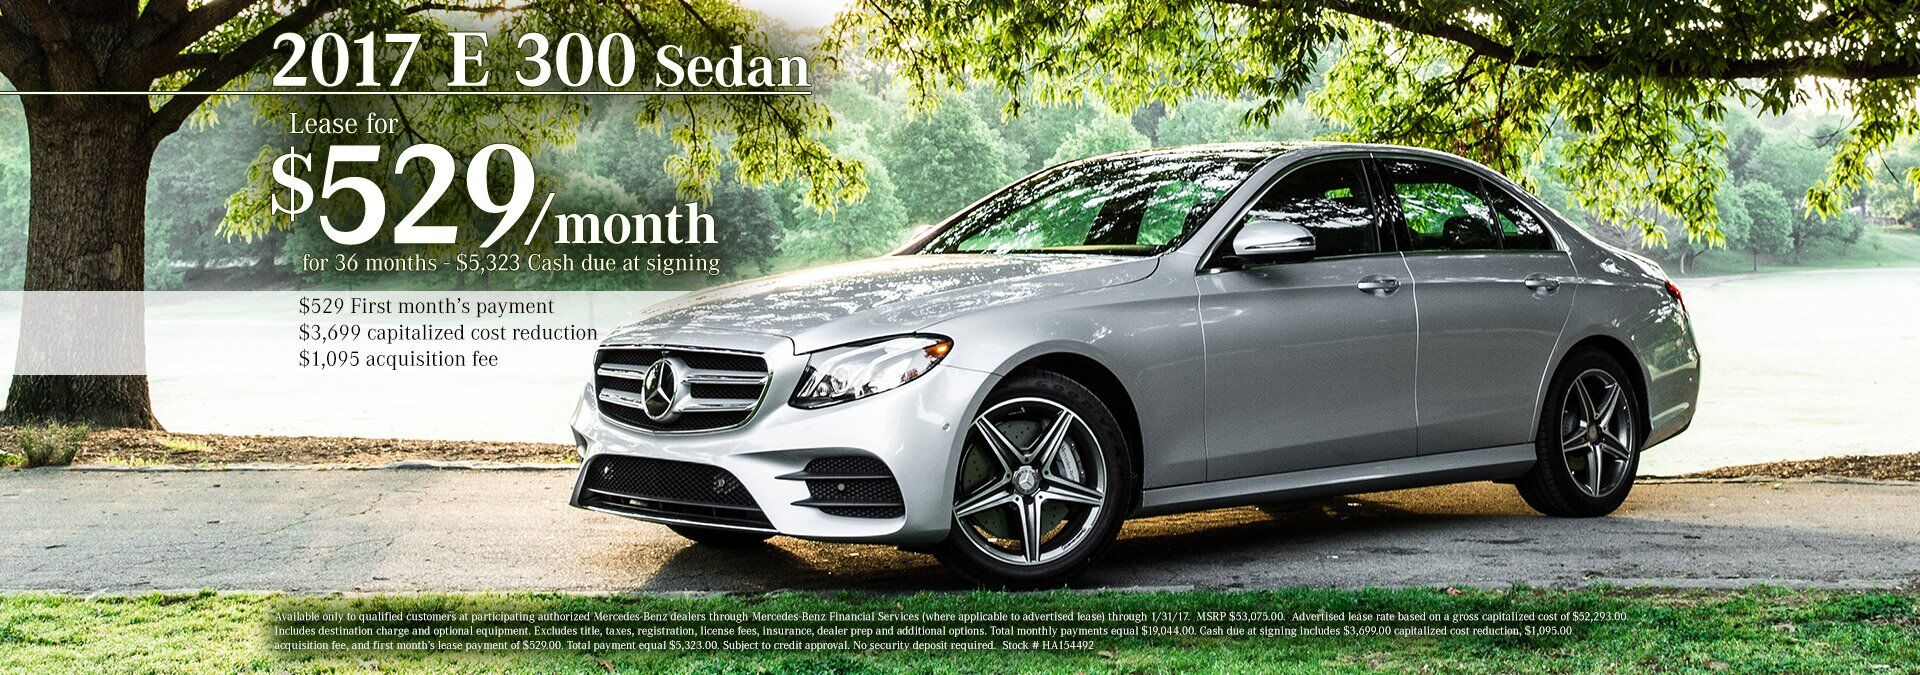 dealership coral gables fl used cars mercedes benz of coral gables. Cars Review. Best American Auto & Cars Review